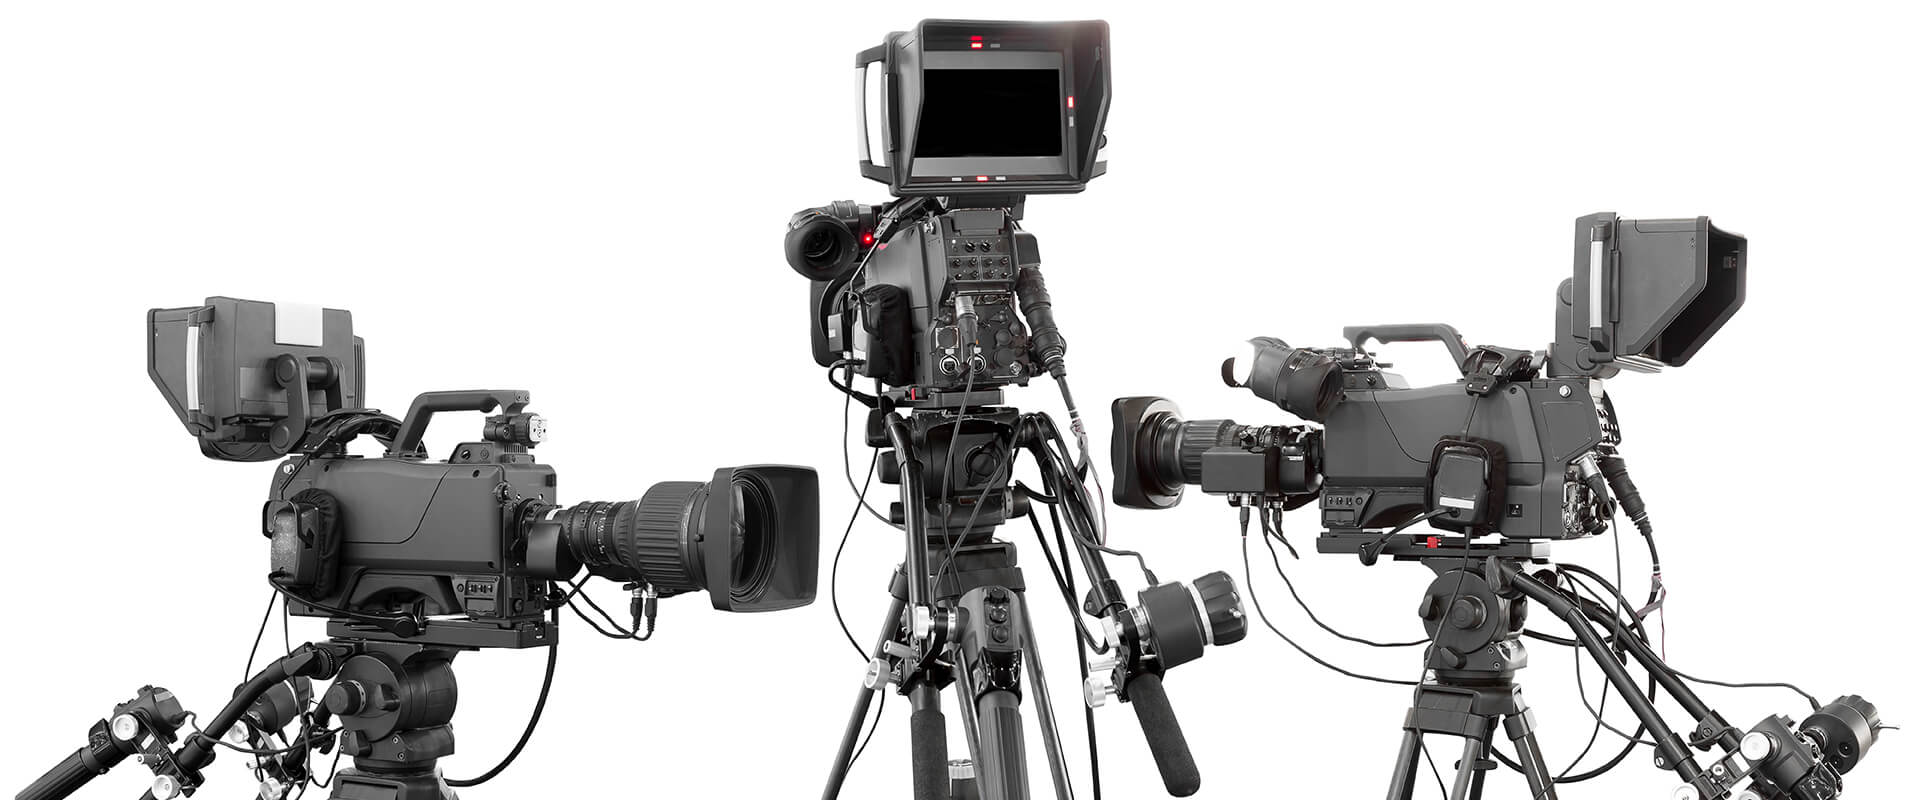 Three broadcast-style cameras on tripods.